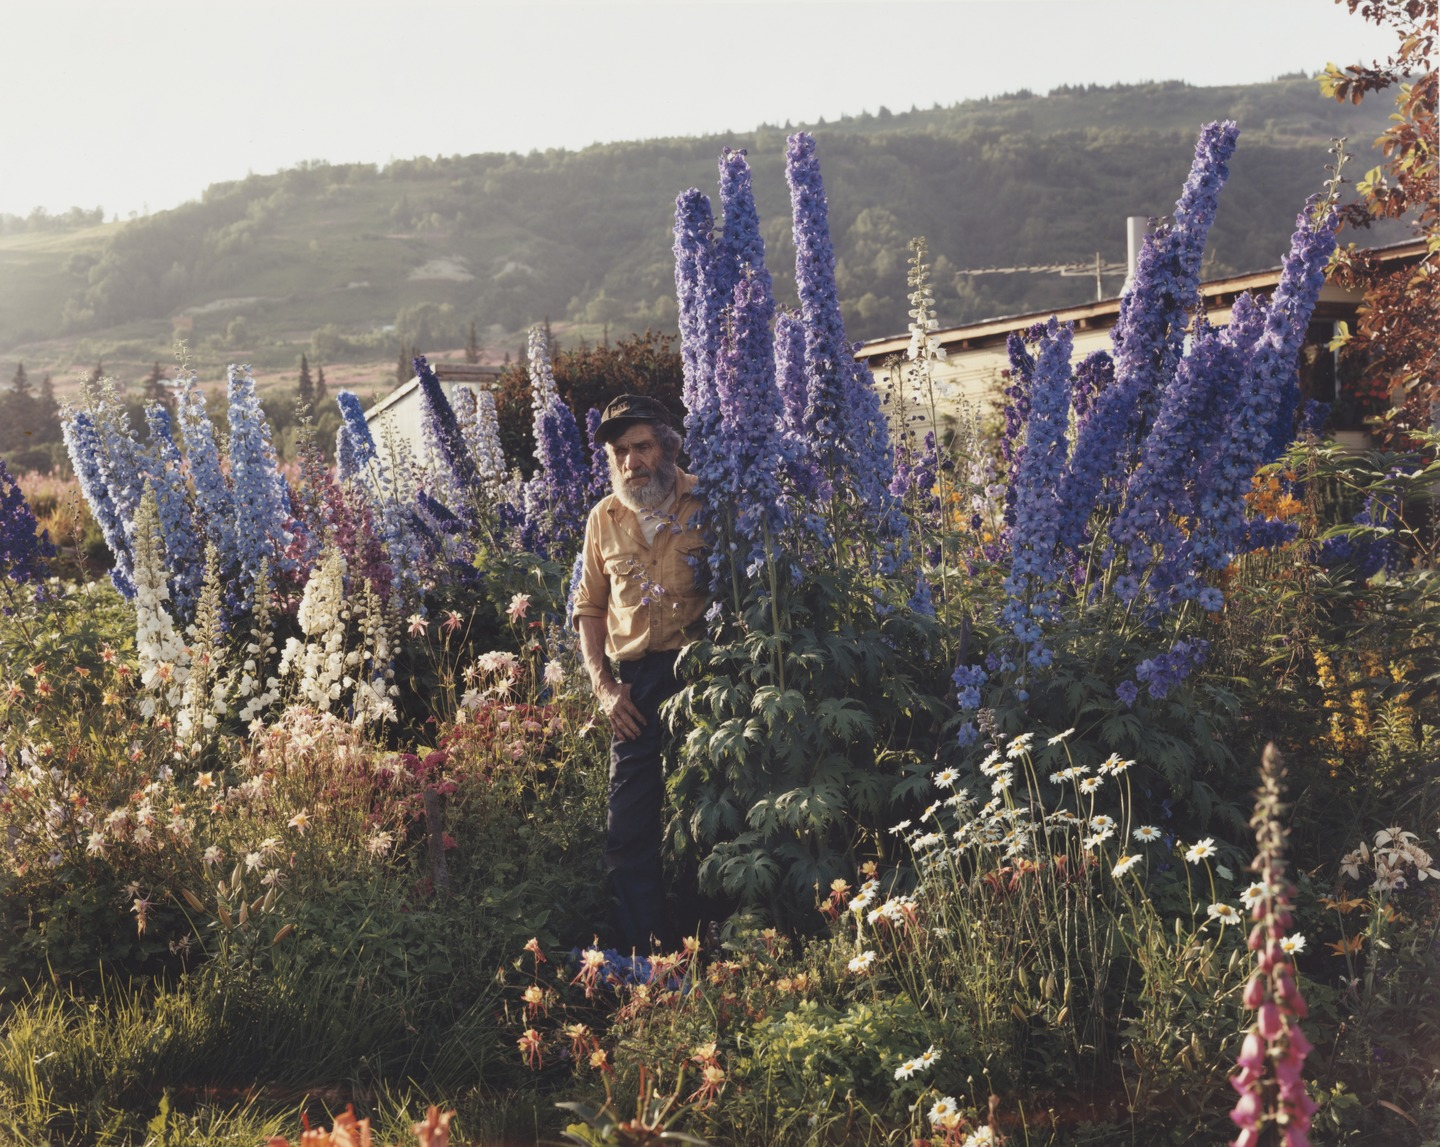 Joel Sternfeld - American Prospects, A Blind Man in His Garden, Homer, Alaska July 1984